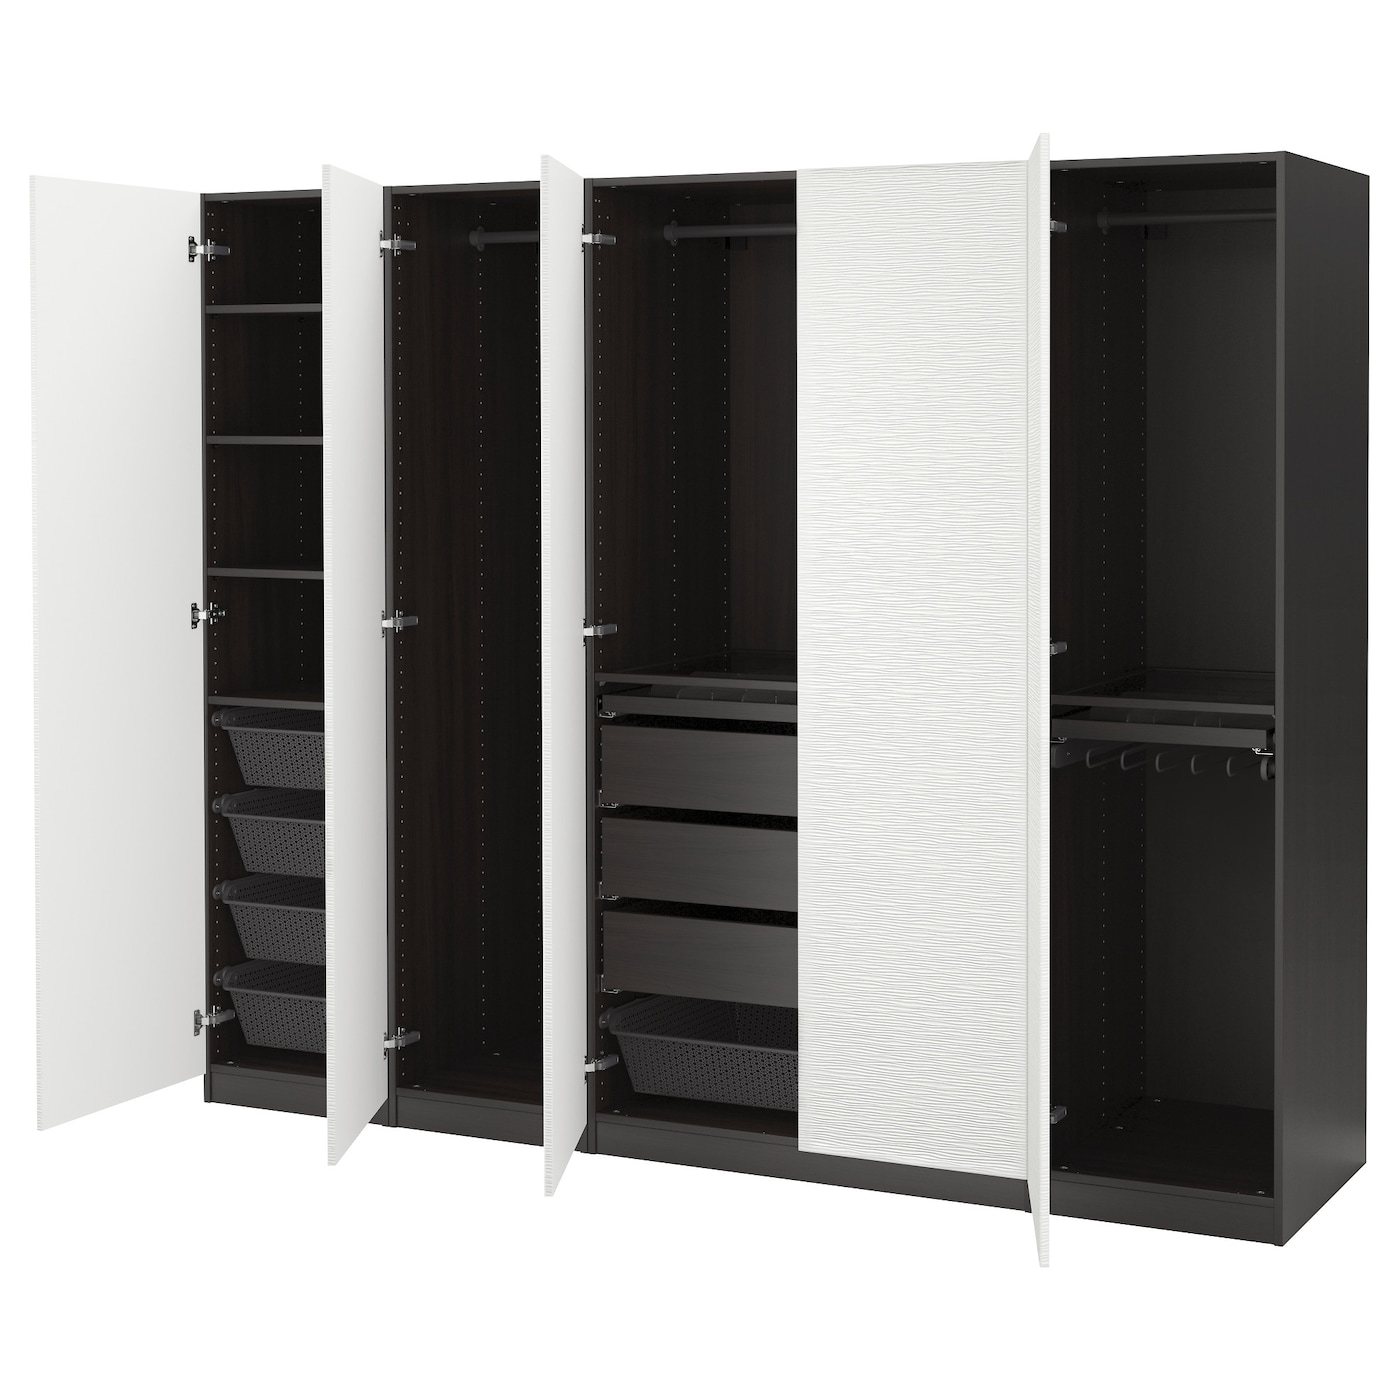 Ikea pax türen vinterbro  PAX Wardrobes | Design your own wardrobe at IKEA